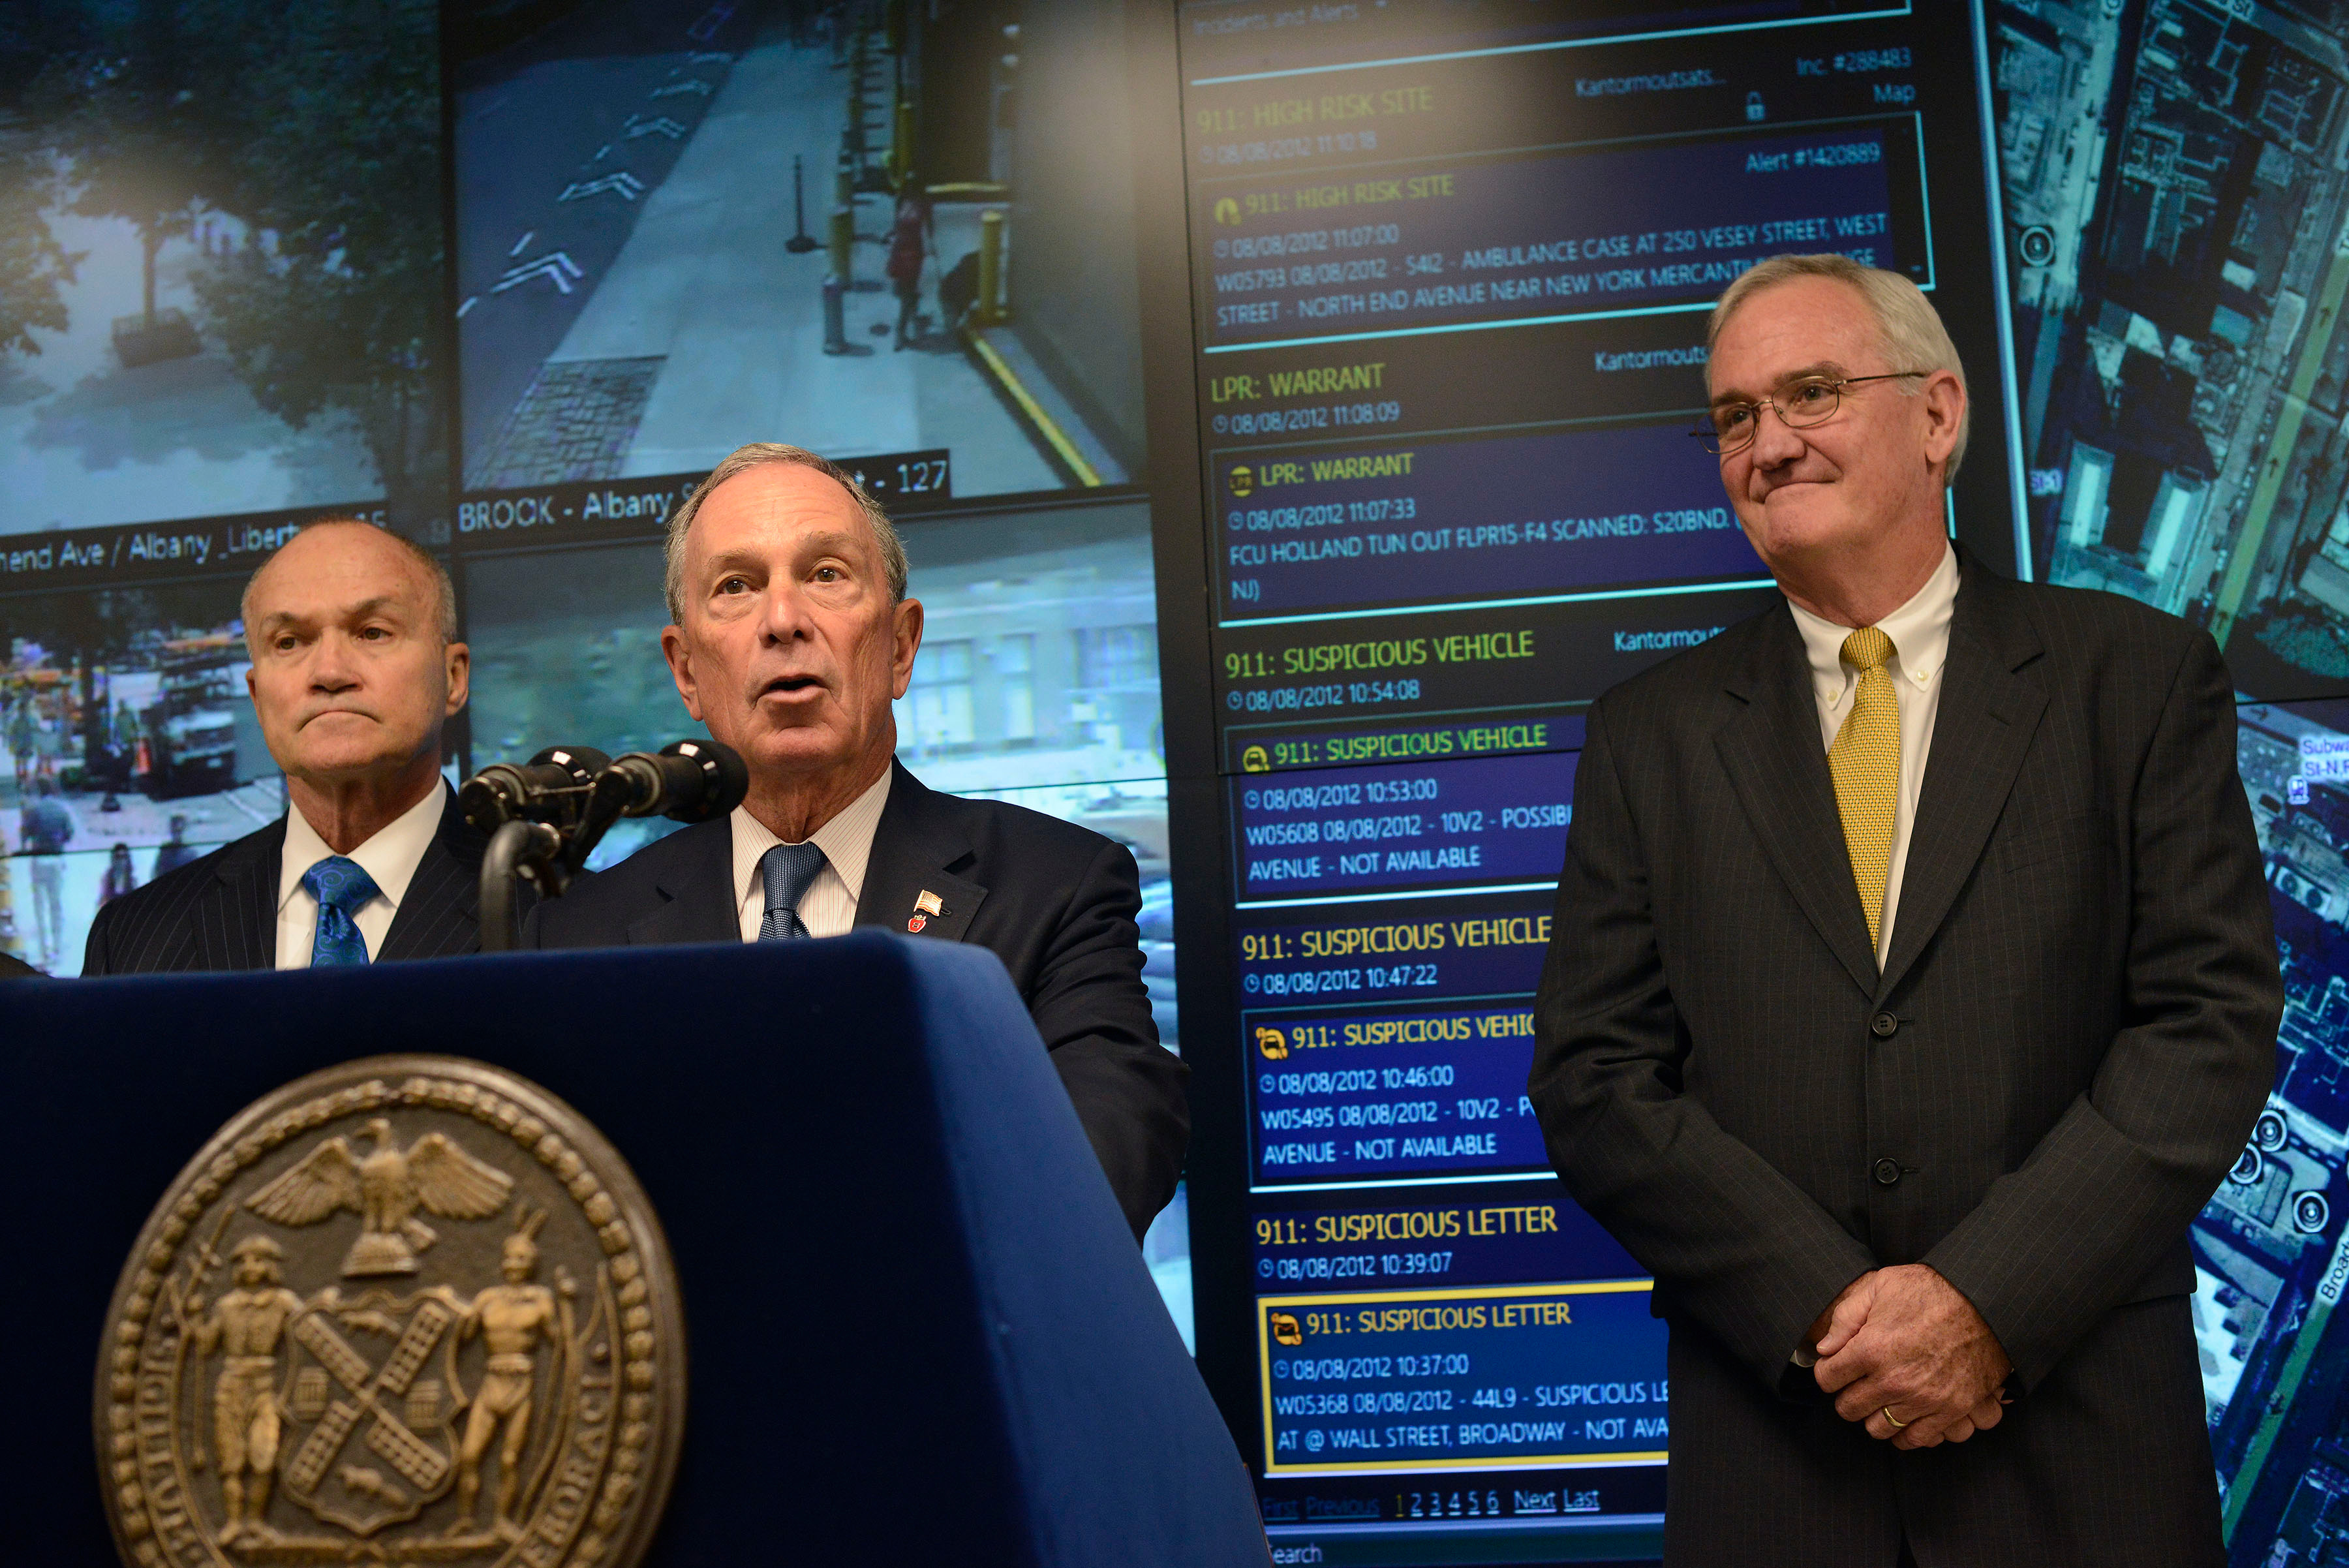 New York City Police Commissioner Raymond Kelly(L) and Microsoft Vice President of Americas Services Mike McDuffie(R) listen as New York City Mayor Michael Bloomberg speaks during a news conference in New York